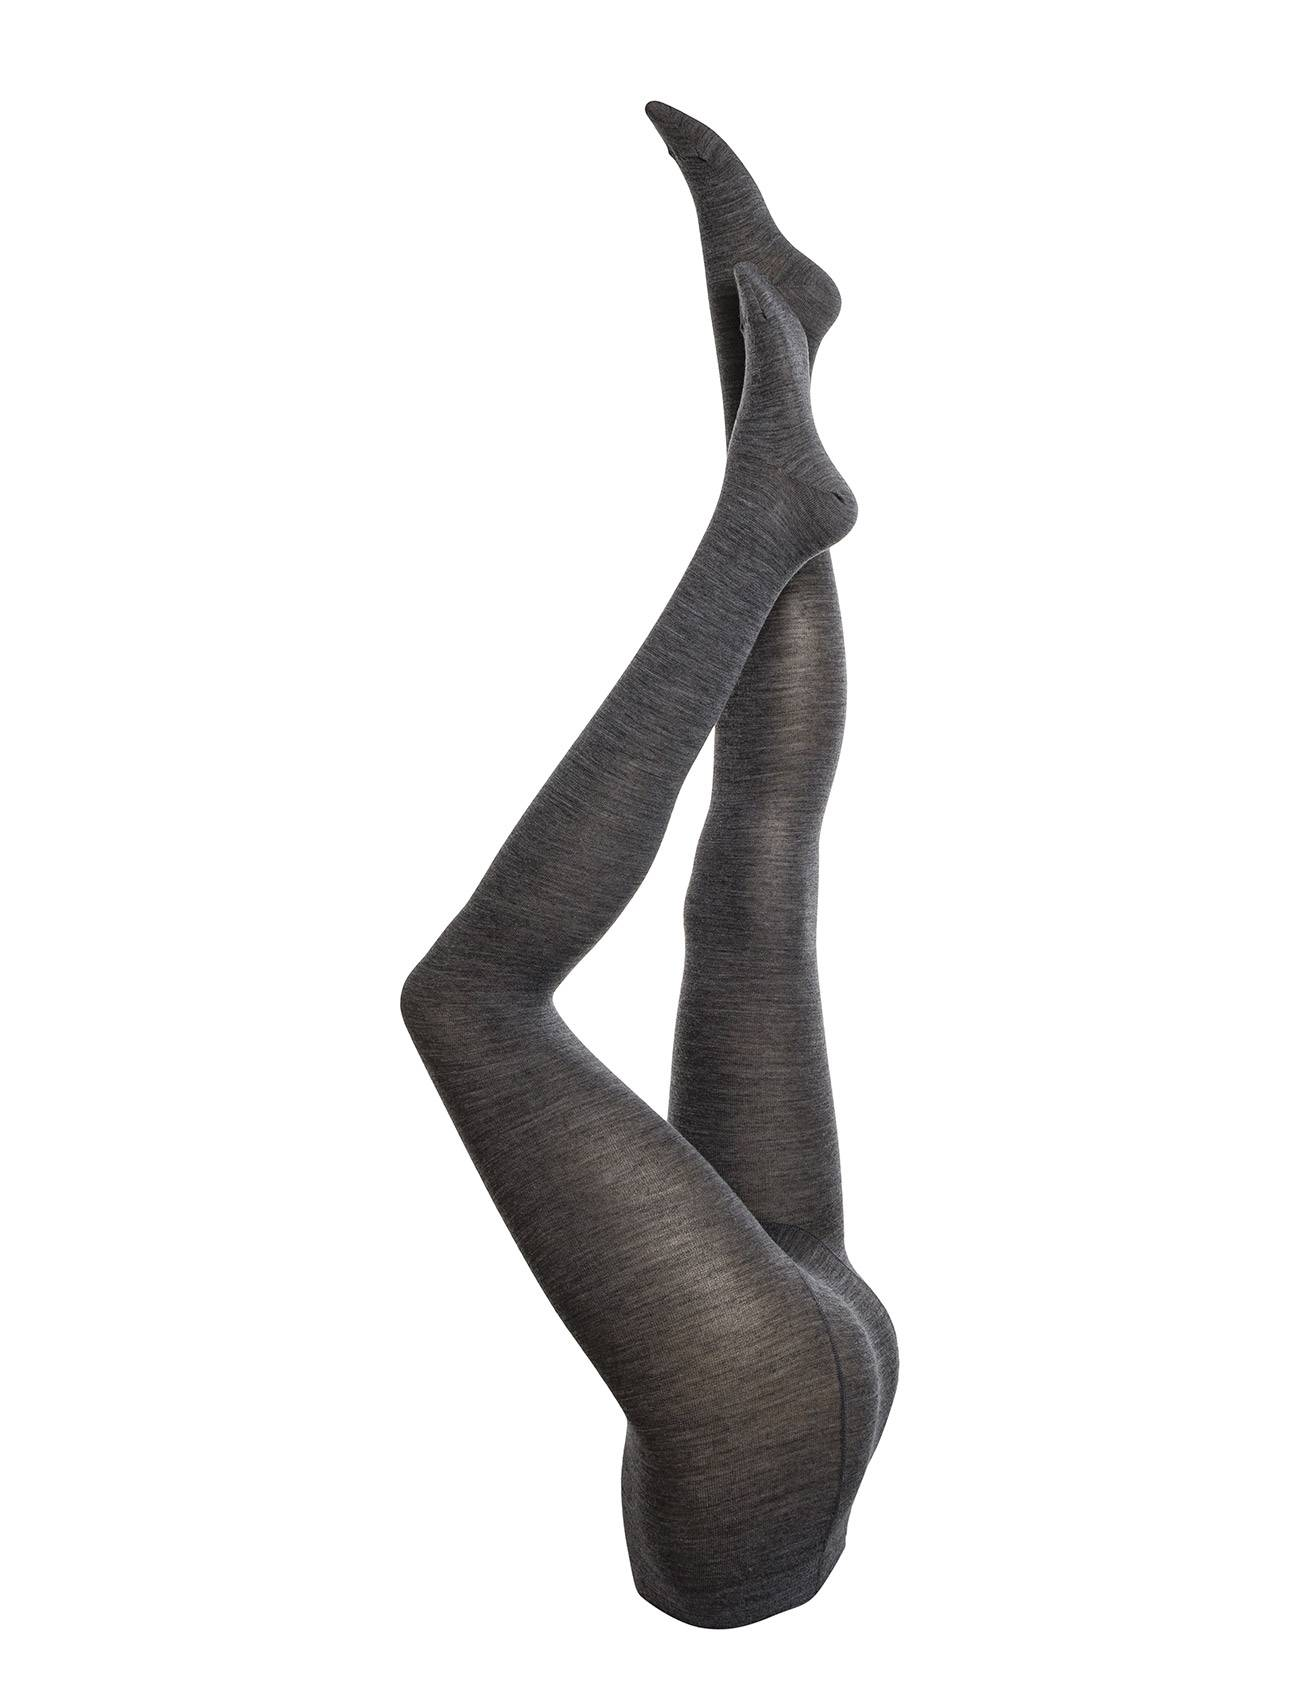 Vogue Ladies Pantyhose, Wool 3d